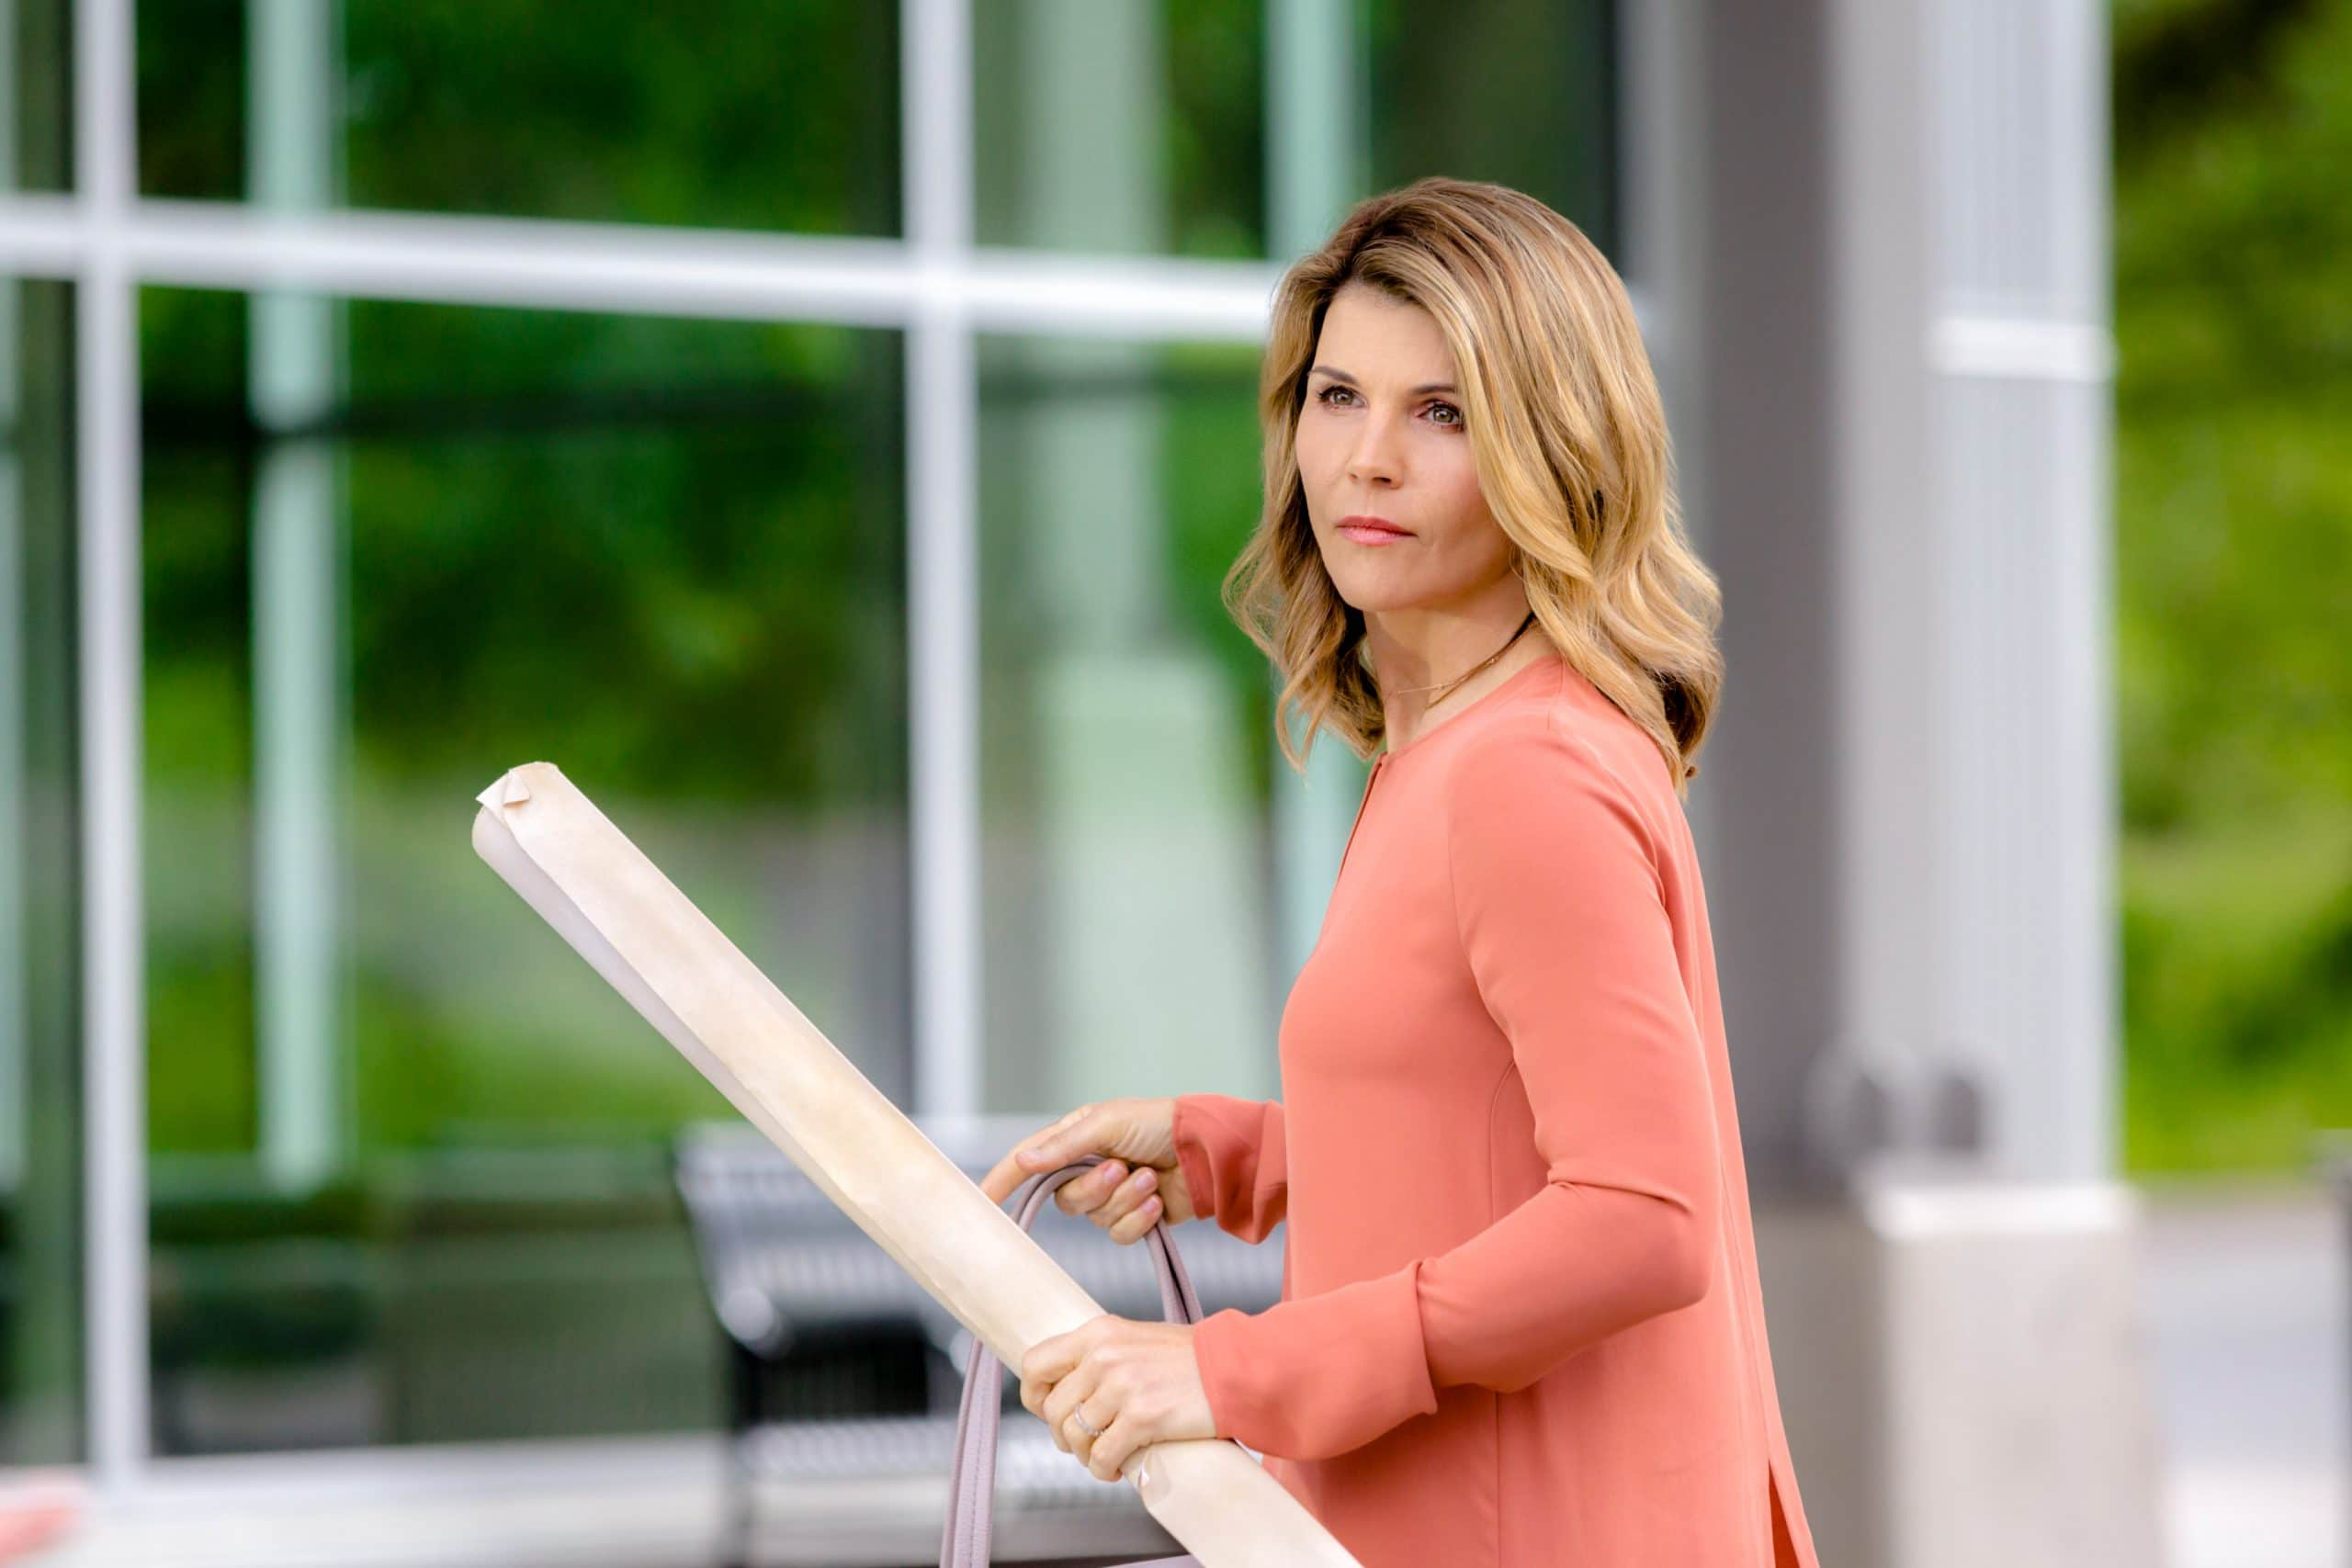 Lori Loughlin Returning Home From Prison, Just In Time For Christmas... So, What's Next?